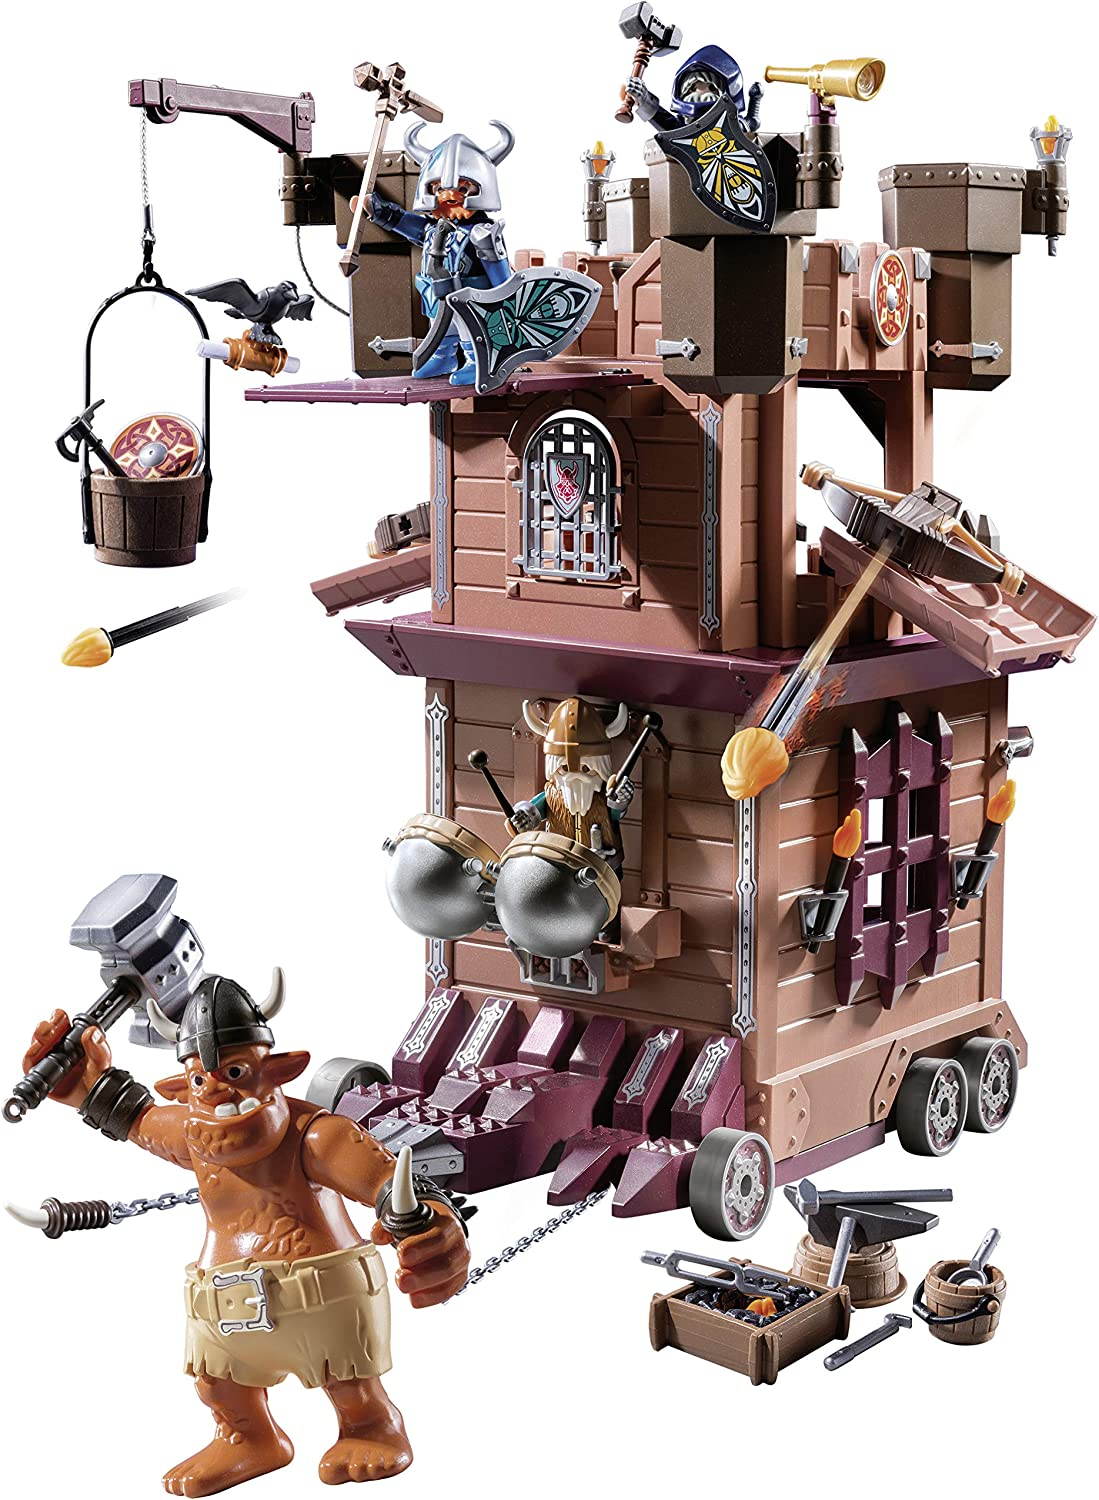 Playmobil Mobile Dwarf Fortress ONLY $39.49 SHIPPED at Amazon (Reg $85)